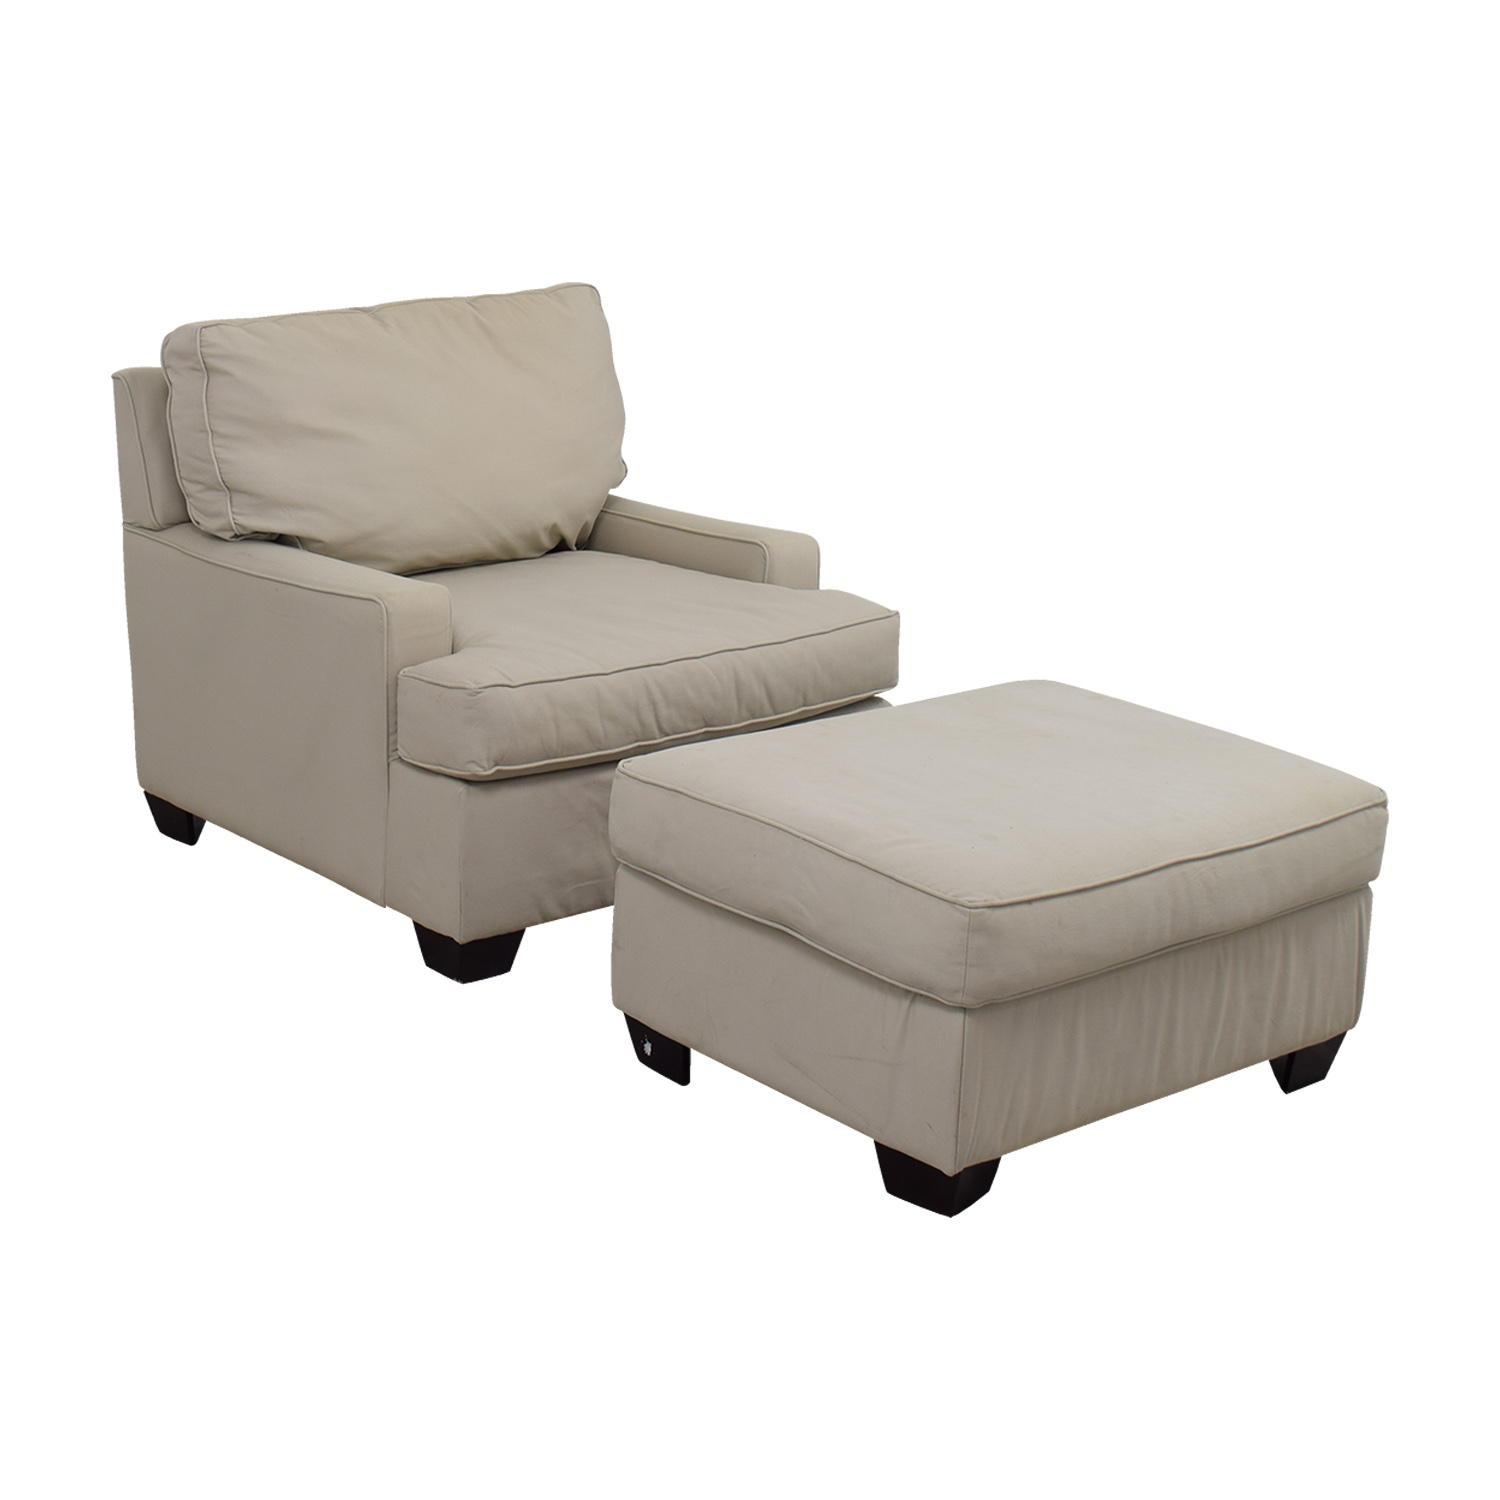 Pottery Barn Chairs Accent: Pottery Barn Pottery Barn Buckwheat Sofa Chair